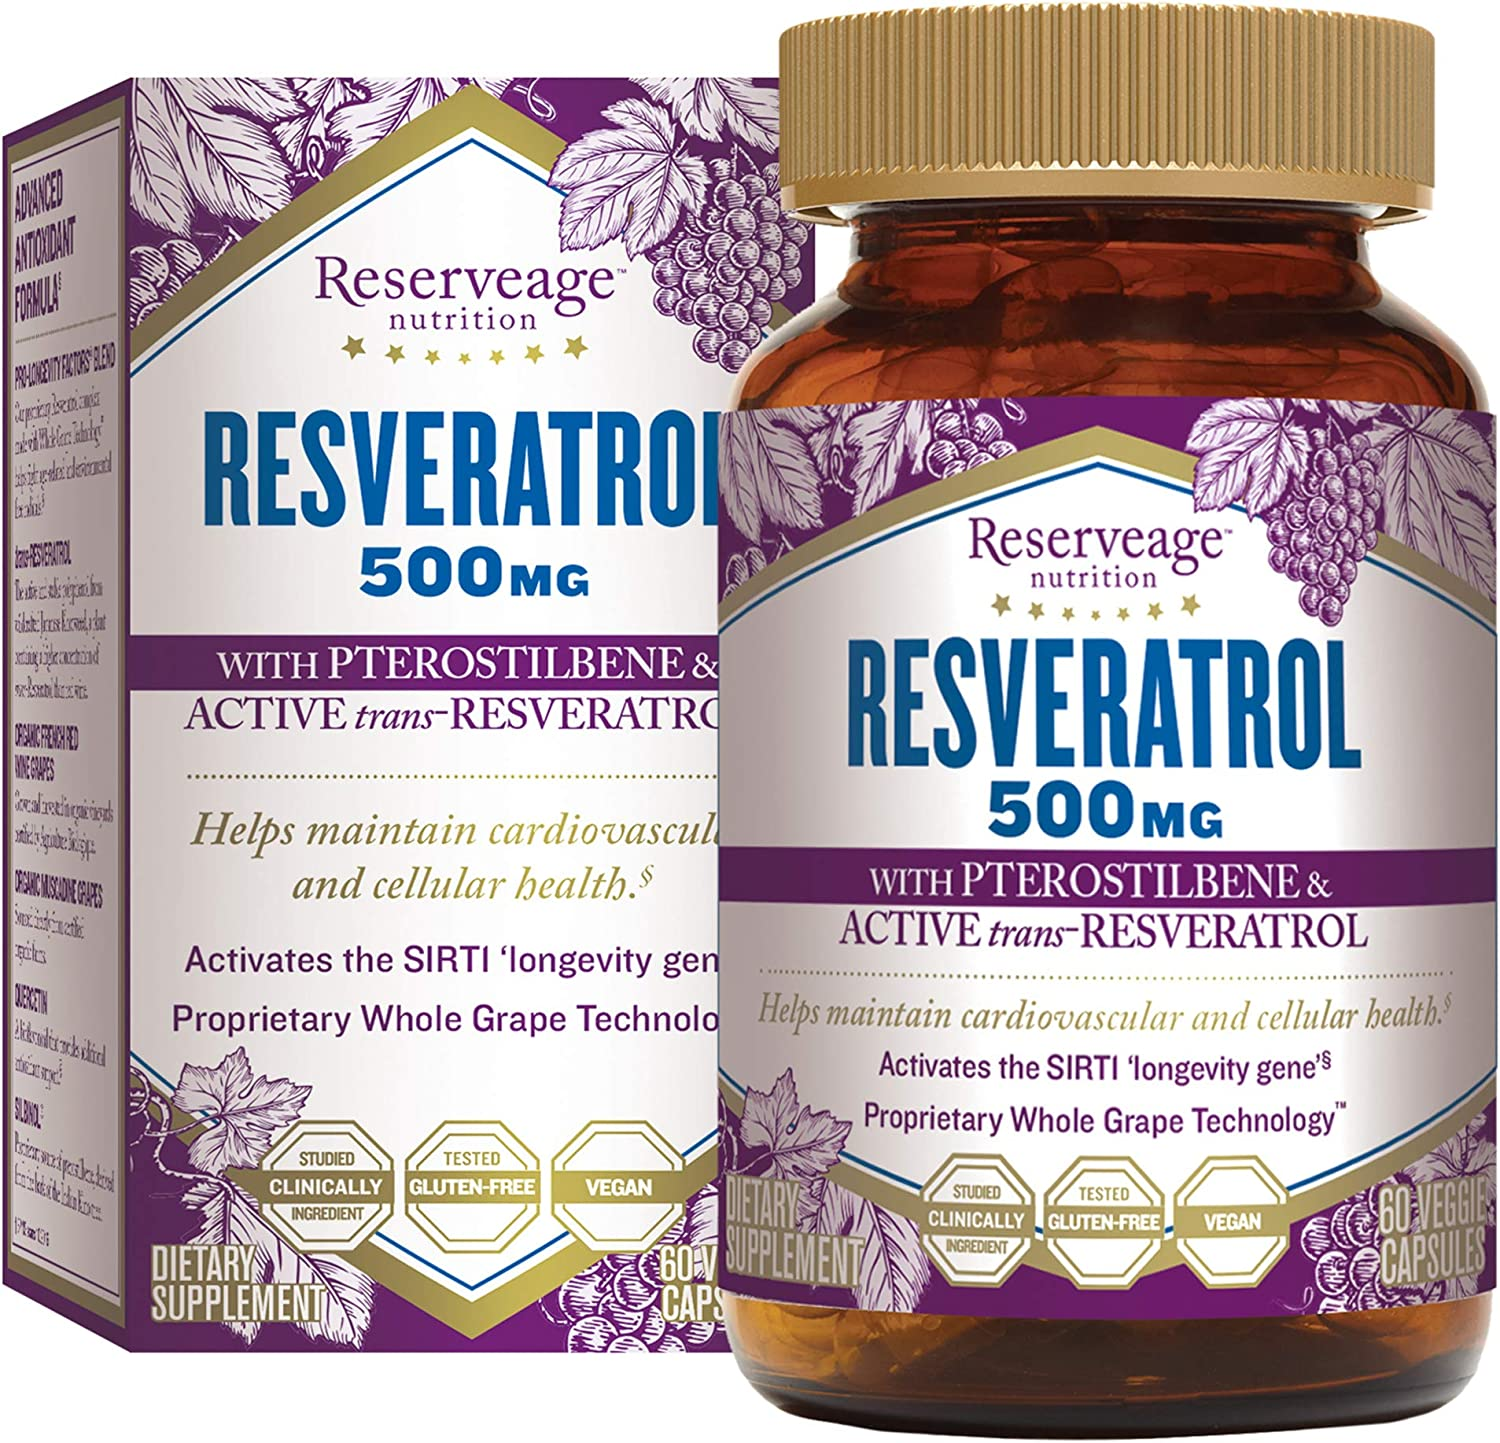 Reserveage, Resveratrol 500 mg with Pterostilbene, Antioxidant Supplement for Cardiovascular and Cellular Health, Supports Healthy Aging, Paleo, Keto, 60 capsules (60 servings)